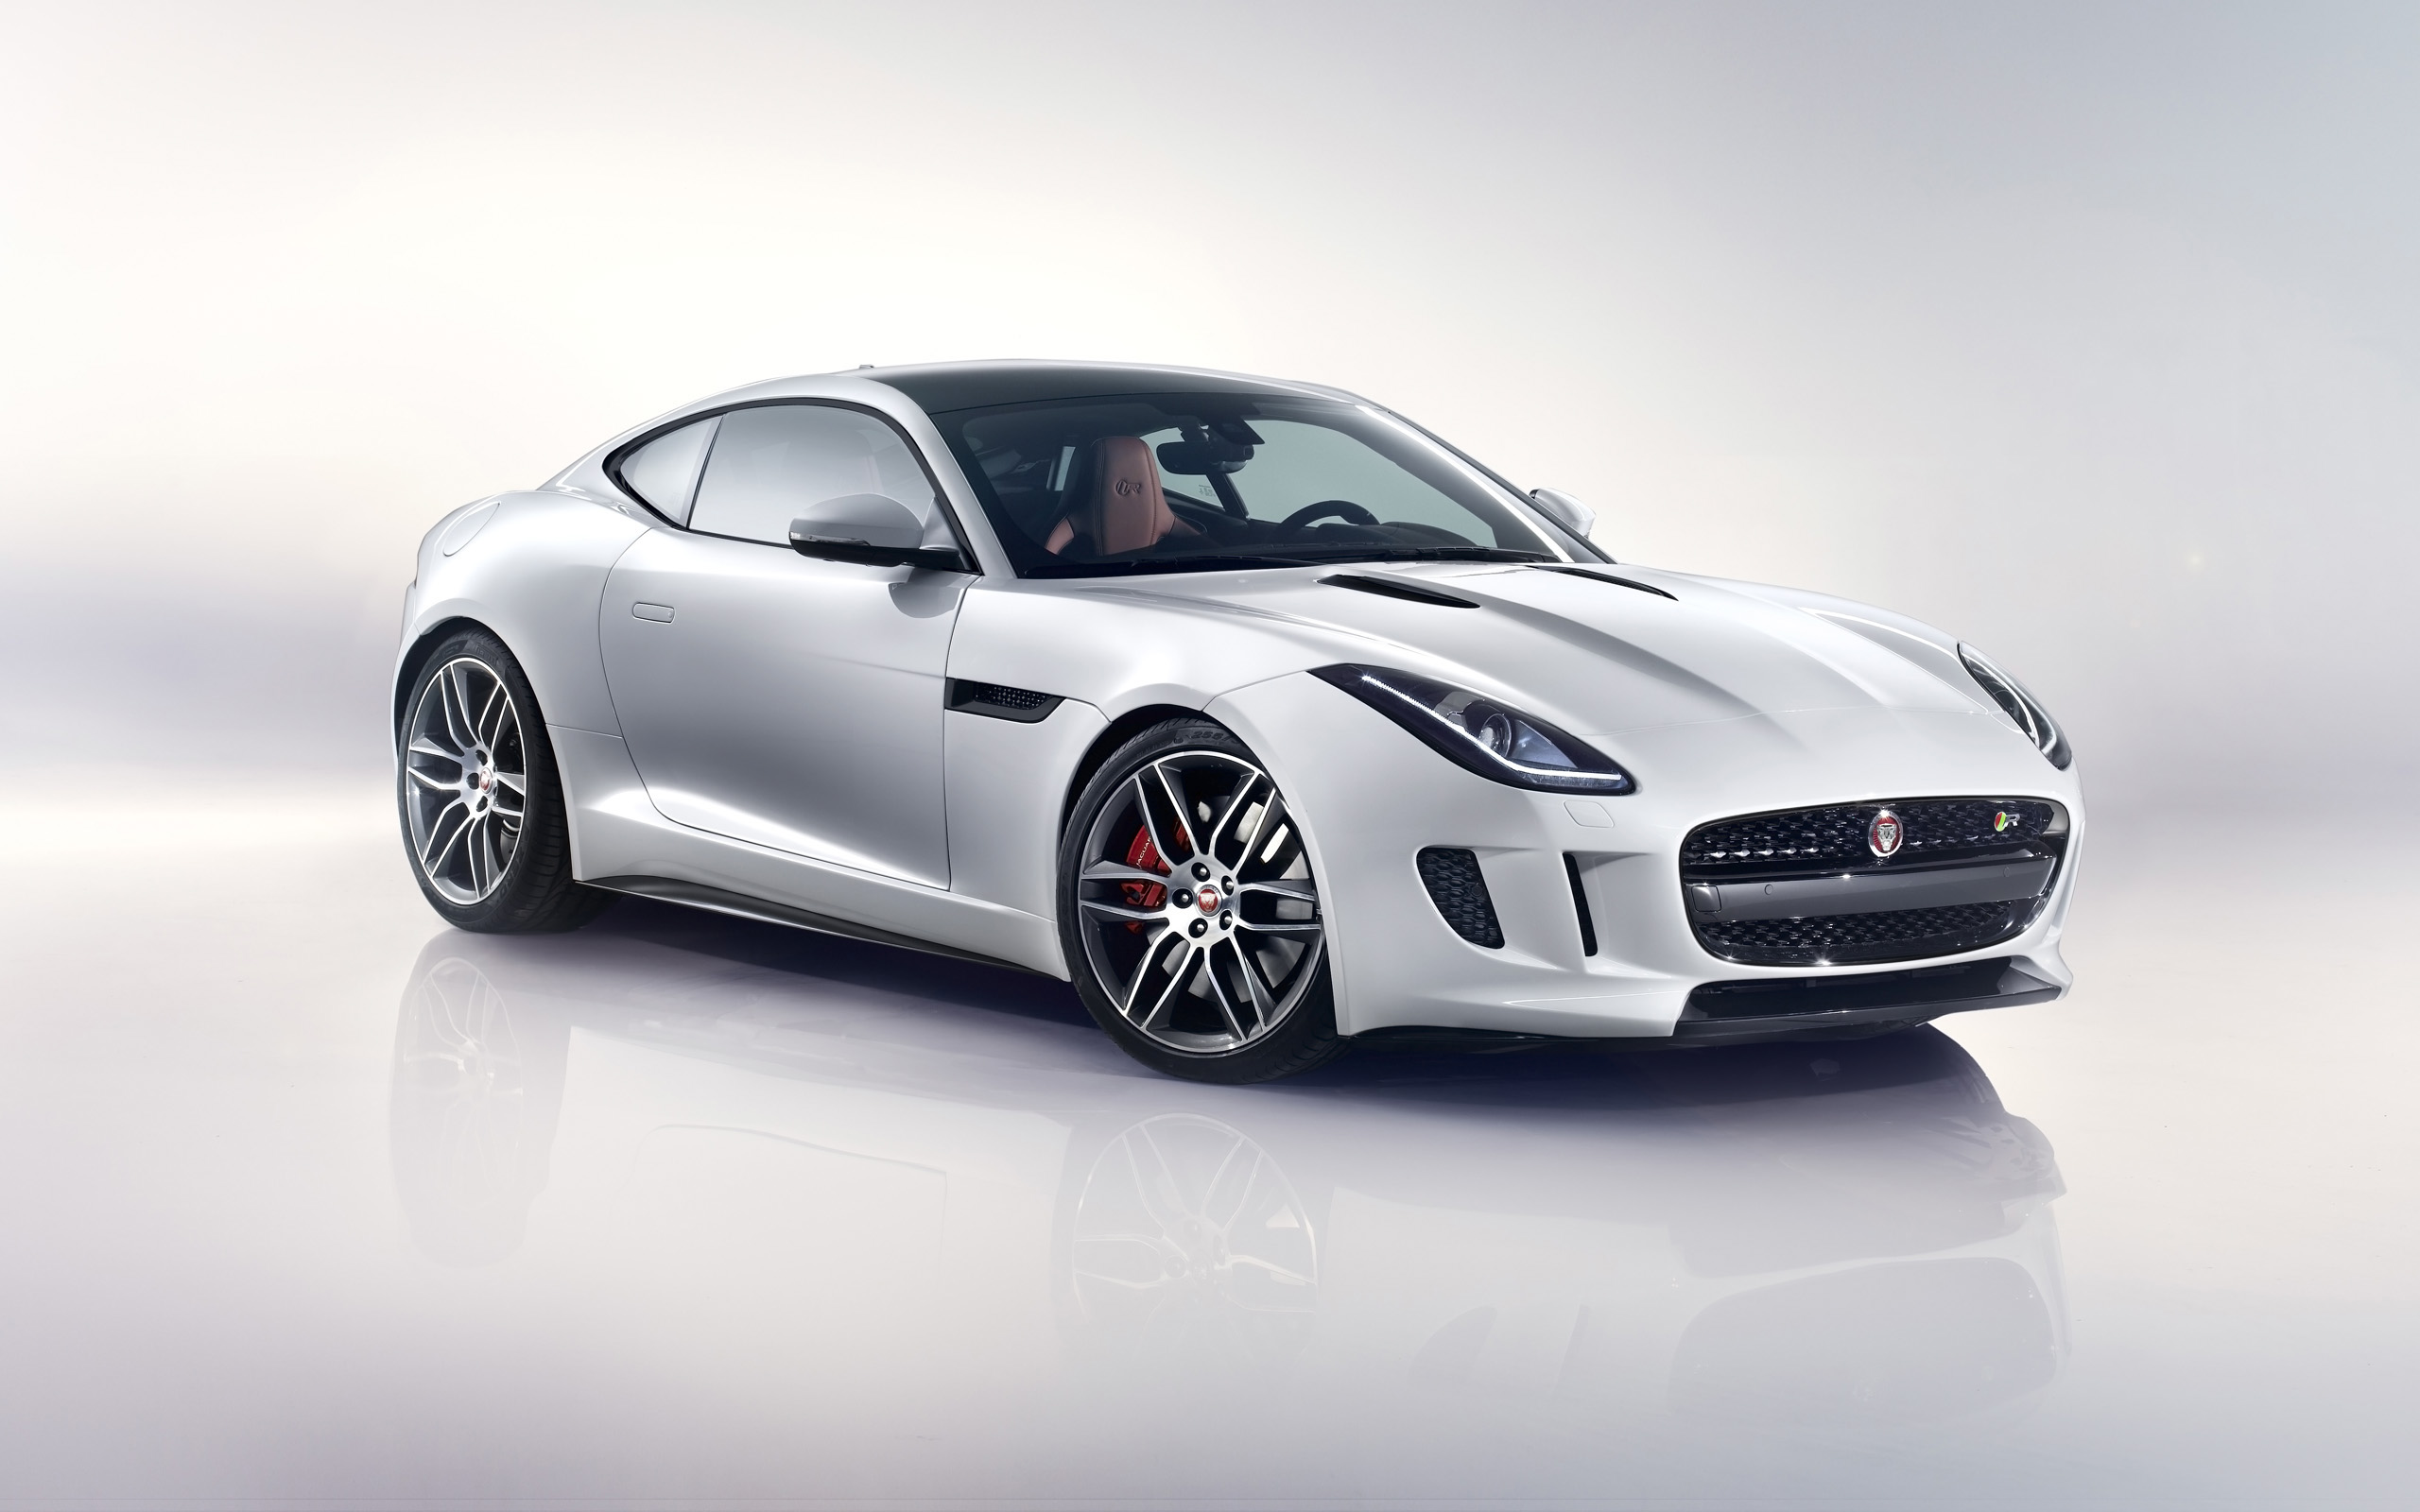 2014 jaguar f type r coupe white wallpaper hd car wallpapers id 4227. Black Bedroom Furniture Sets. Home Design Ideas